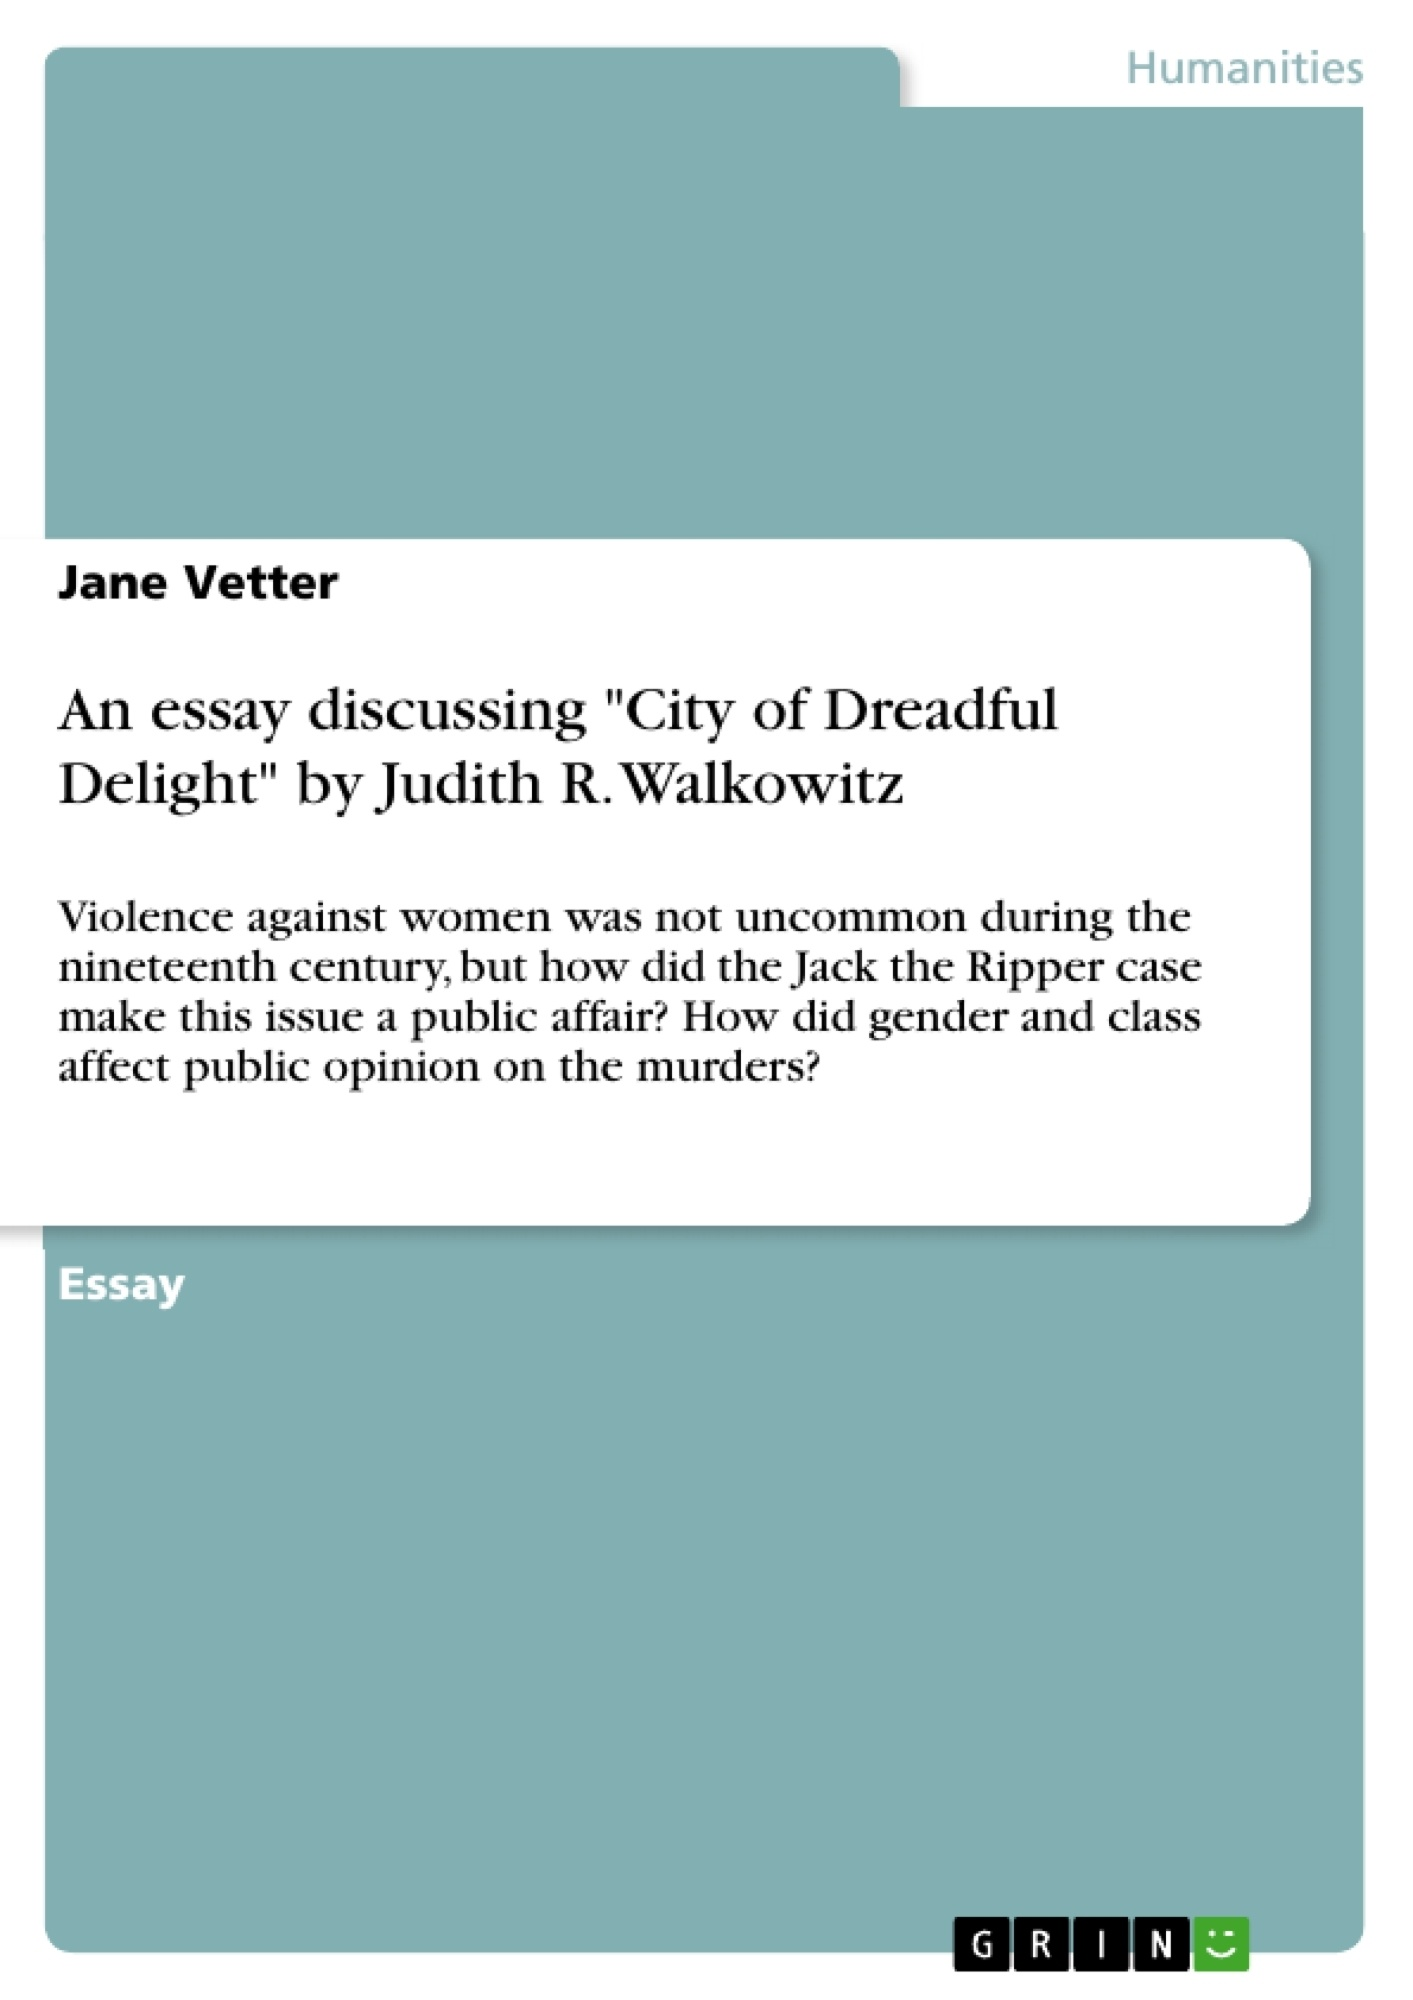 an essay discussing city of dreadful delight by judith r an essay discussing city of dreadful delight by judith r walkowitz publish your master s thesis bachelor s thesis essay or term paper